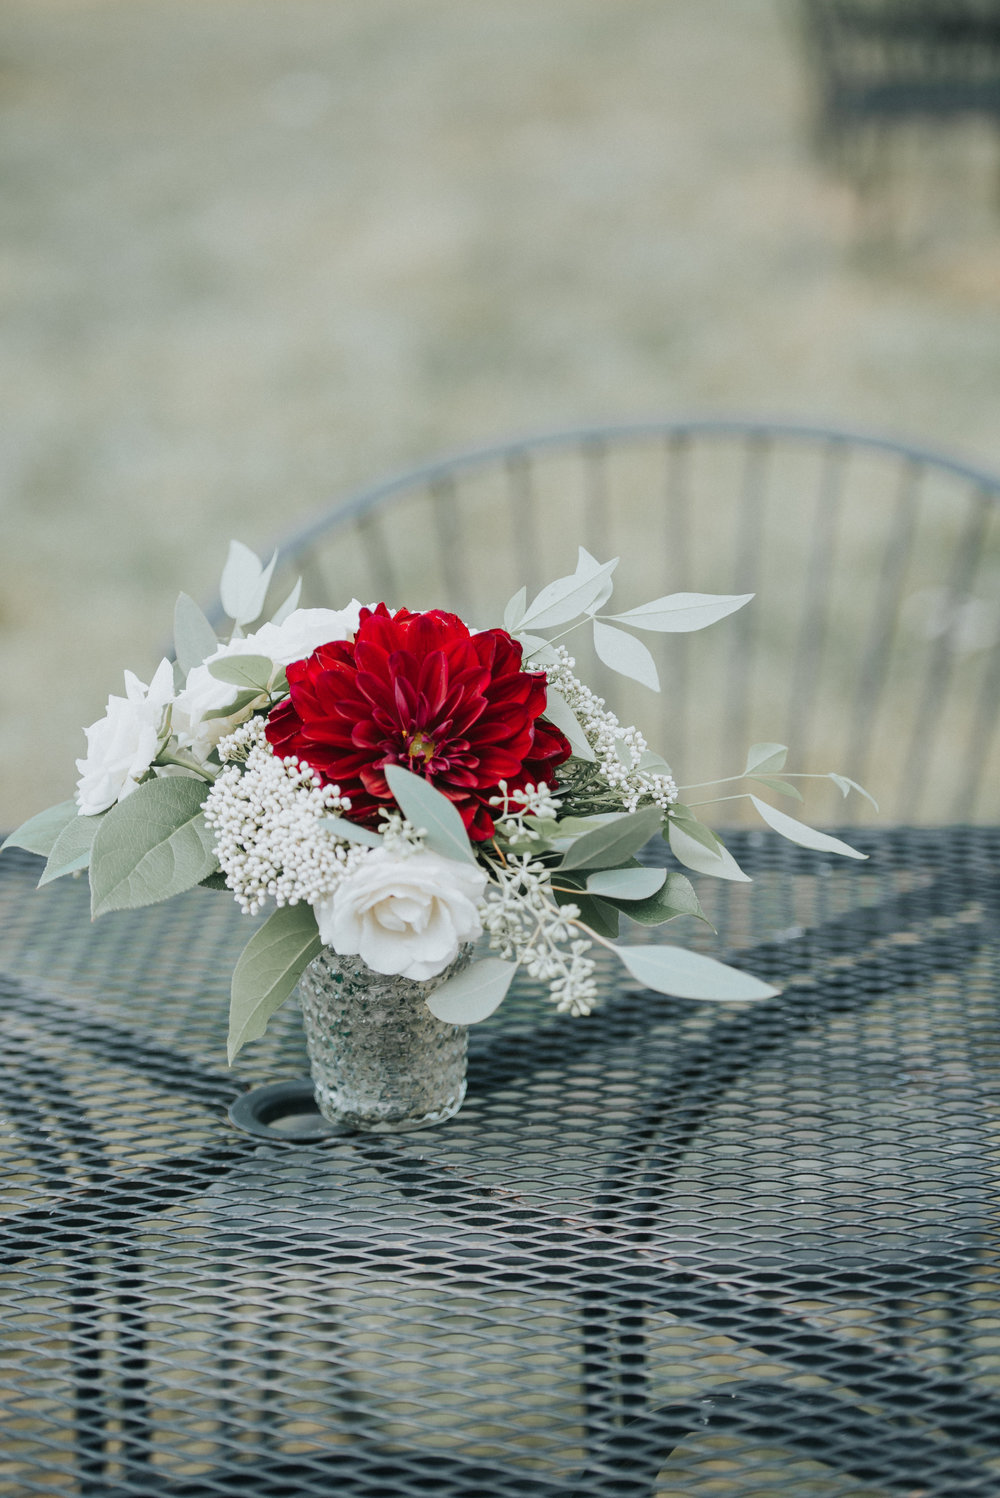 A vibrant red Dahlia on a table meant for lounging. Photography by Purple Fern.